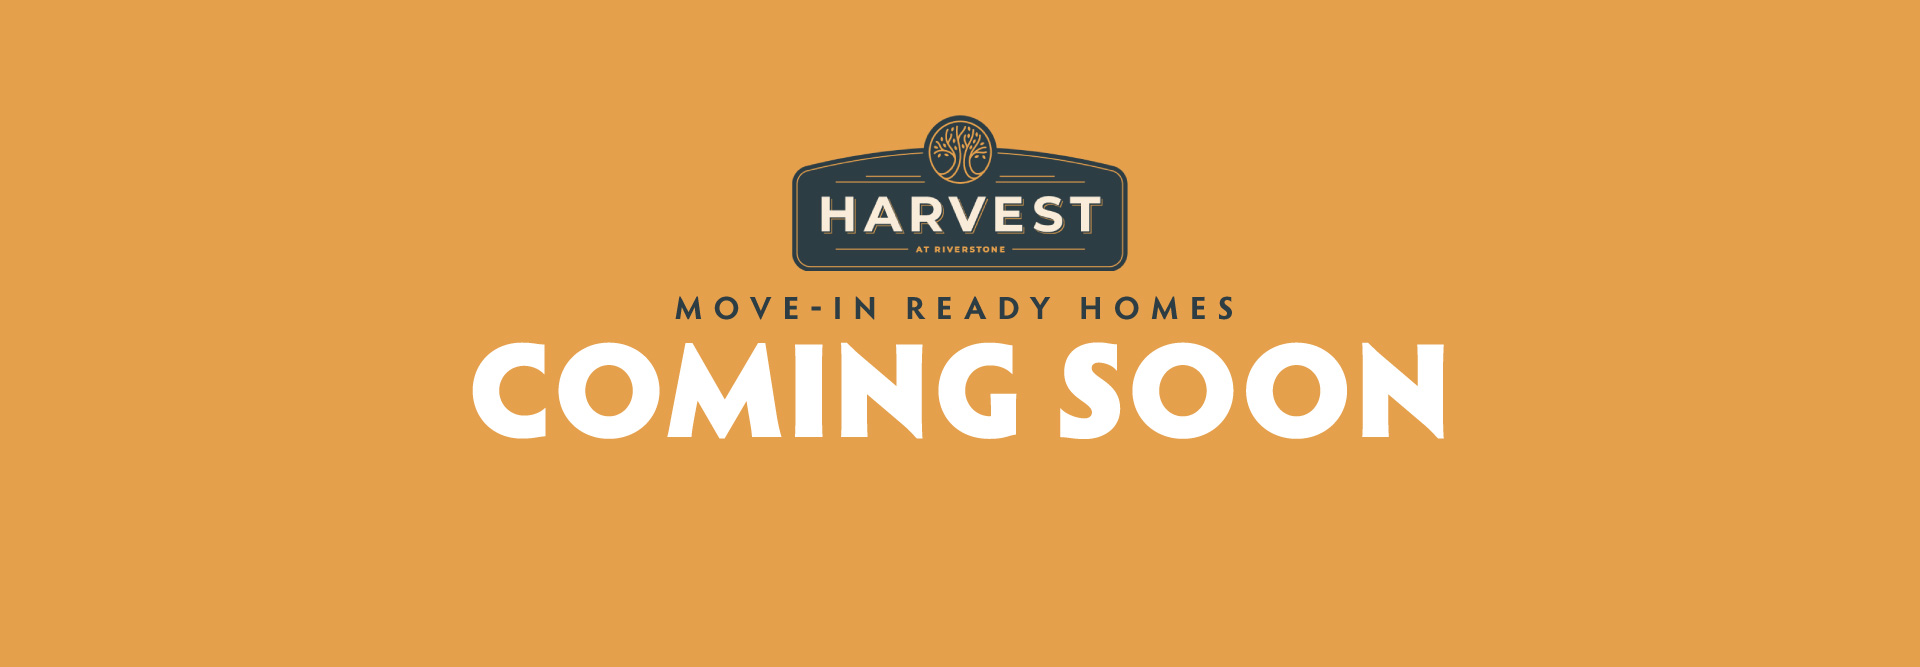 Harvest Move-In Ready Homes Coming Soon